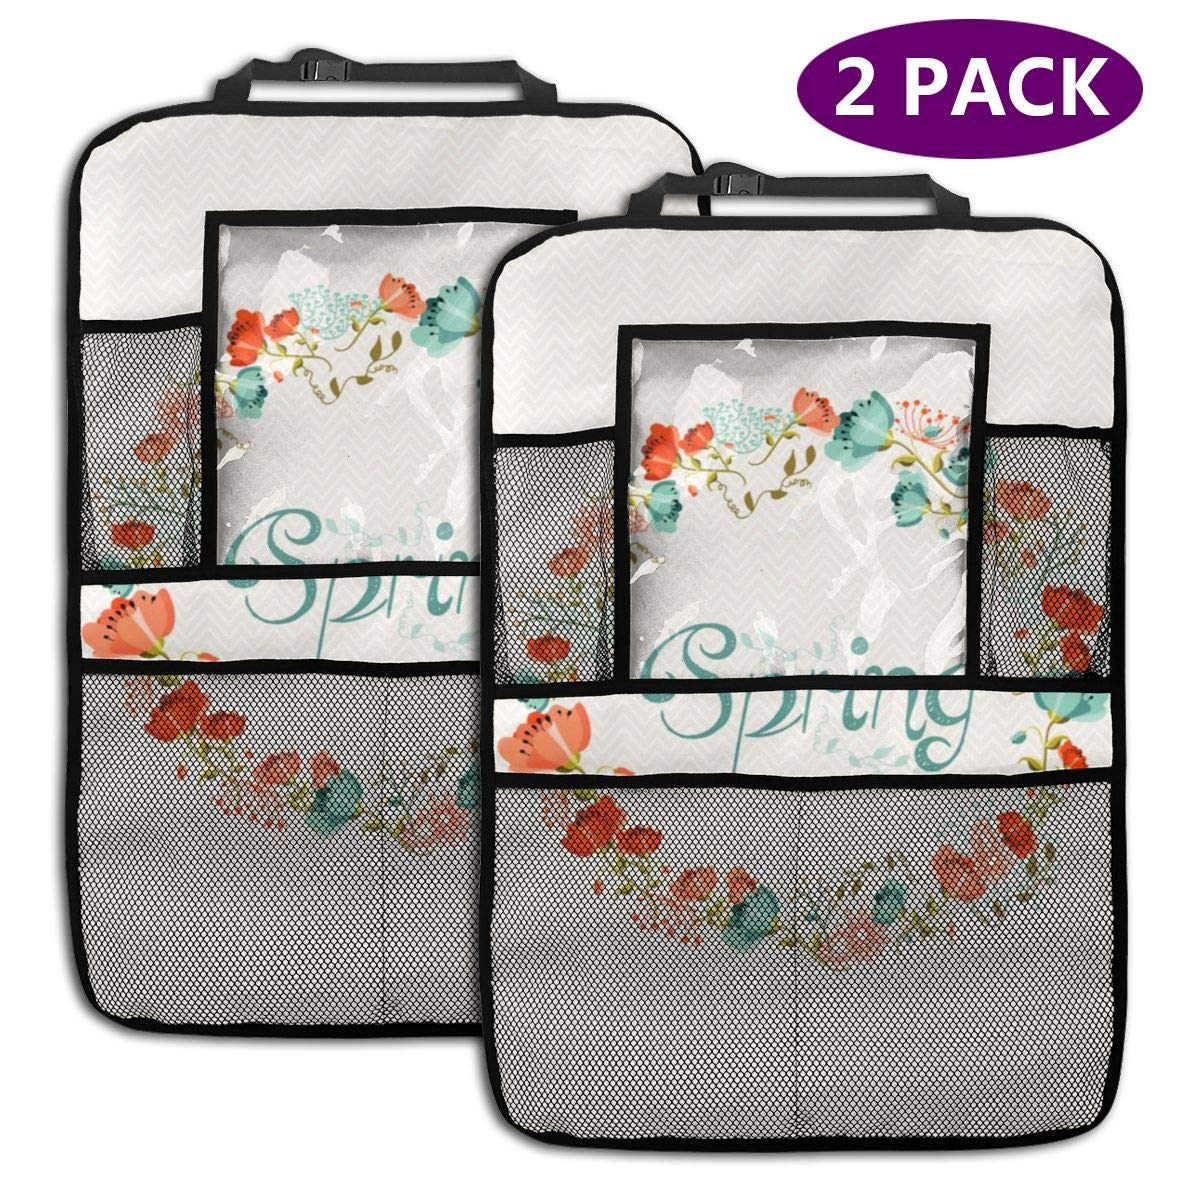 QF6FEICHAN Spring and Flowers Car Seat Back Protectors with Storage Pockets Kick Mats Accessories for Kids and Toddlers by QF6FEICHAN